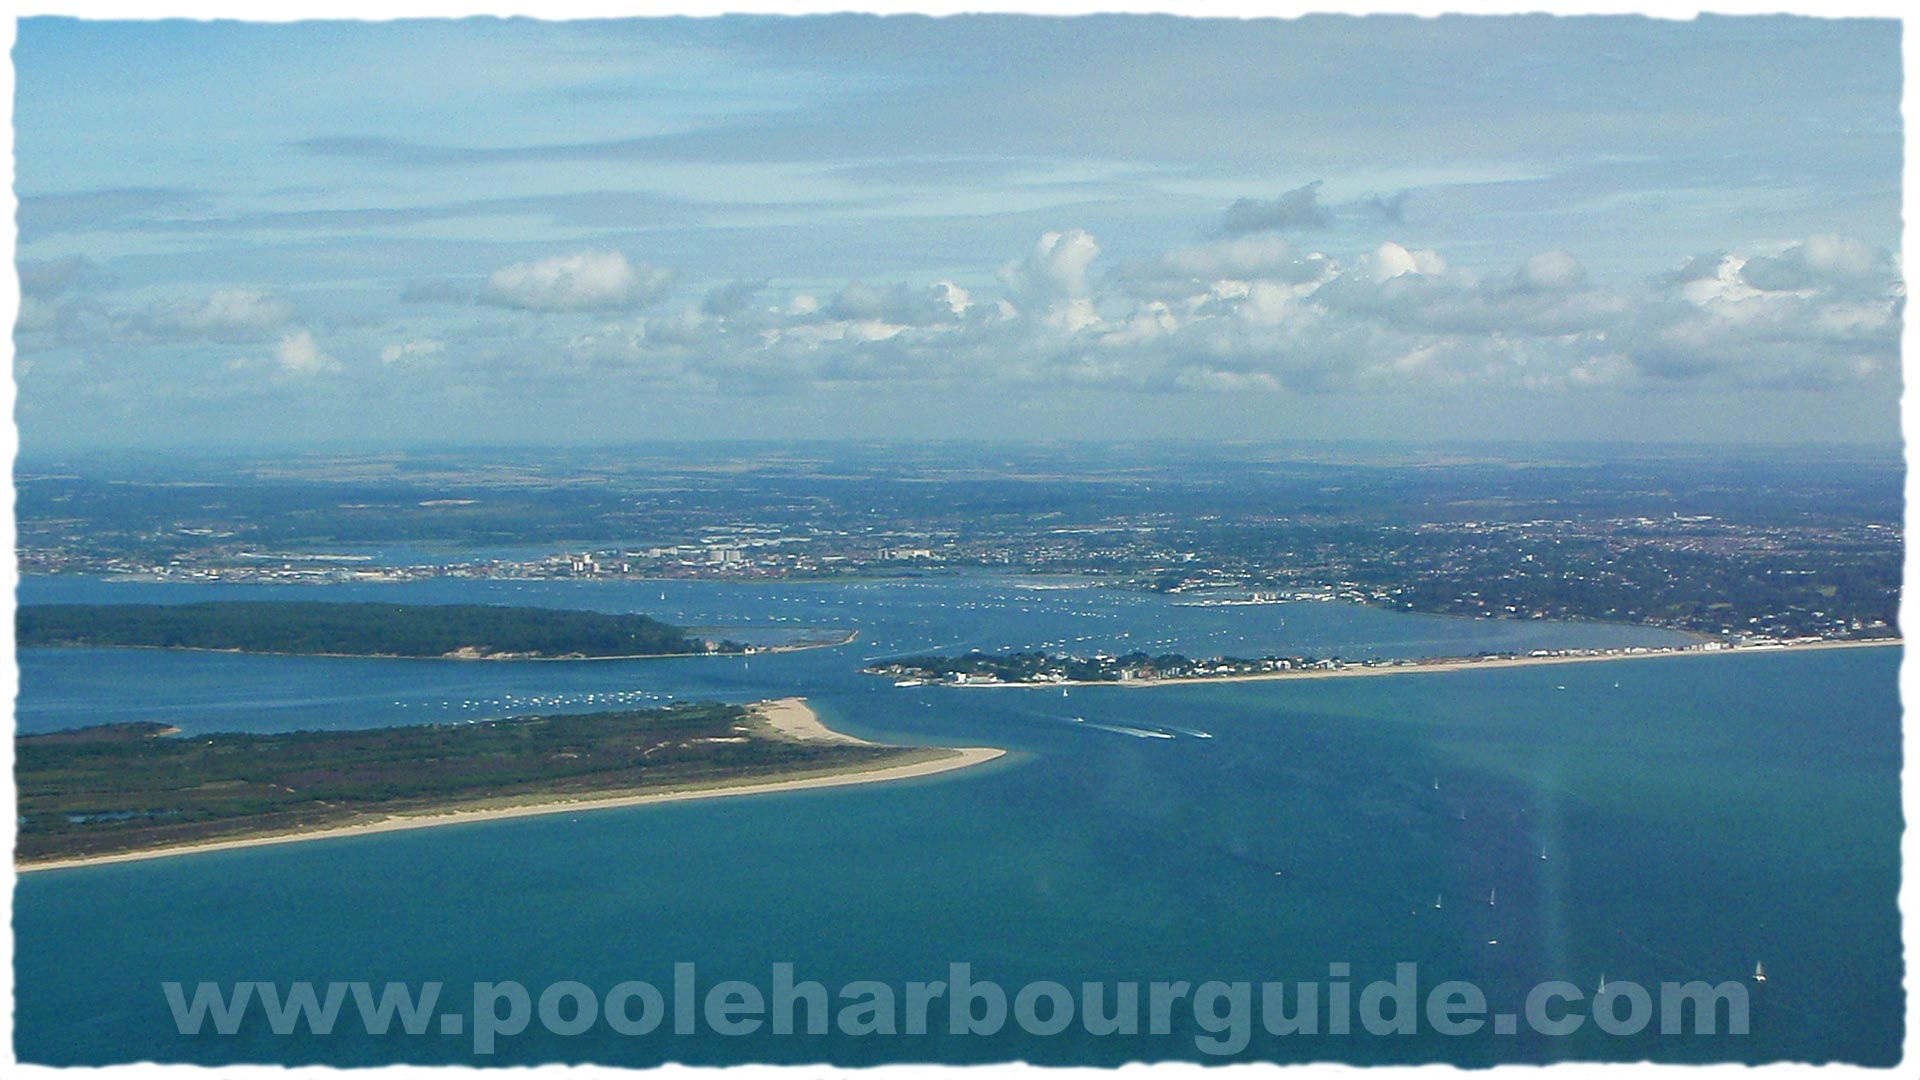 Poole Harbour Tides >> Poole Harbour Aerial Photos